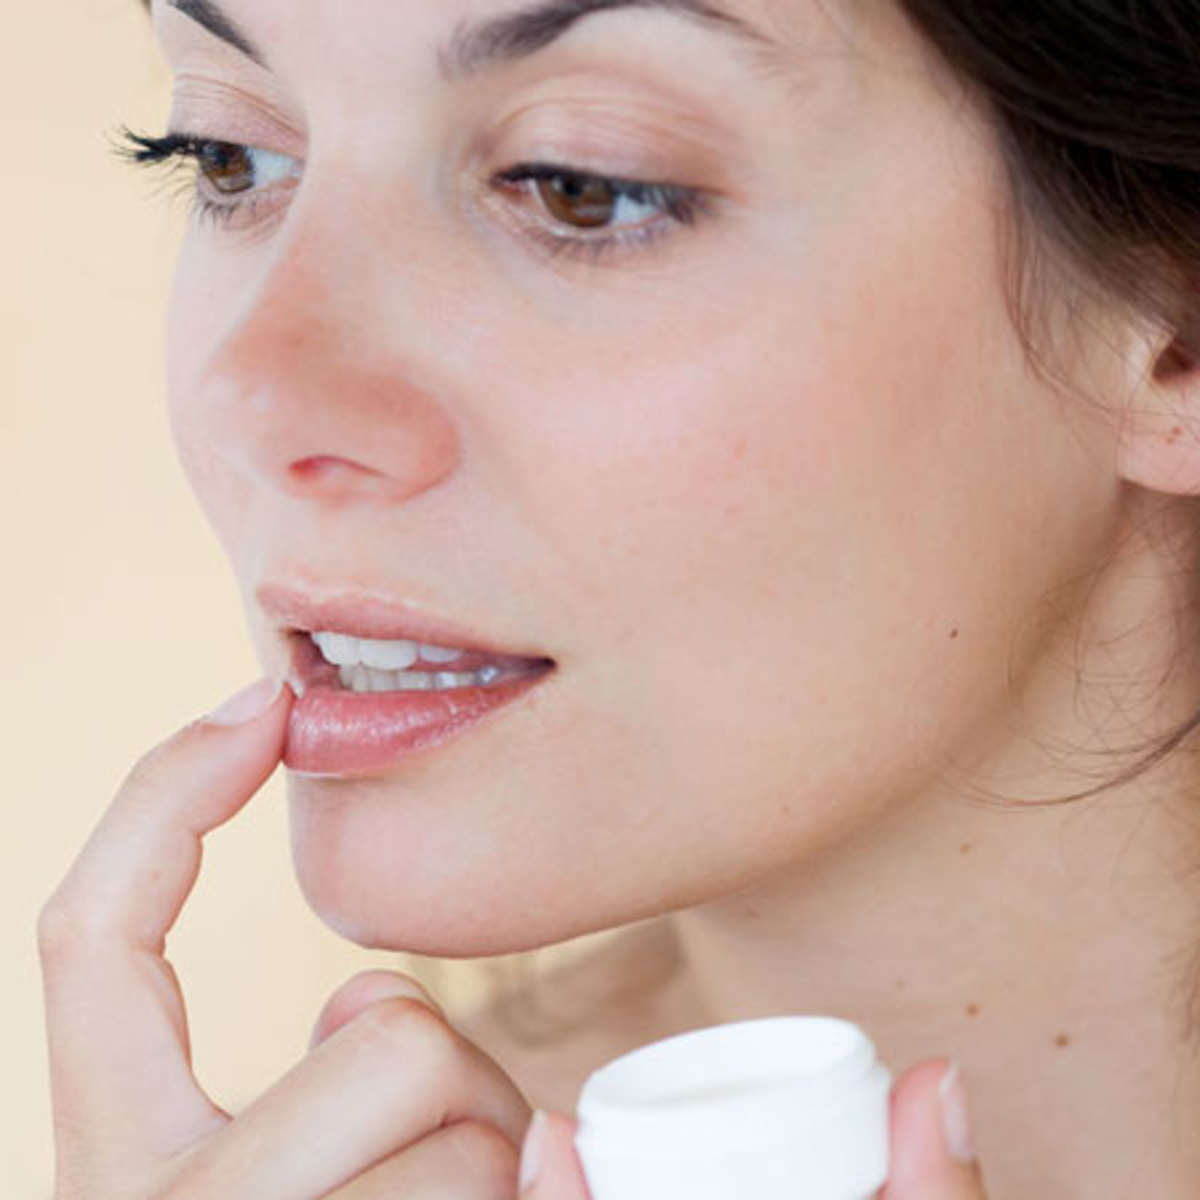 Apply lip balm or chapstick to moisturize your lips.